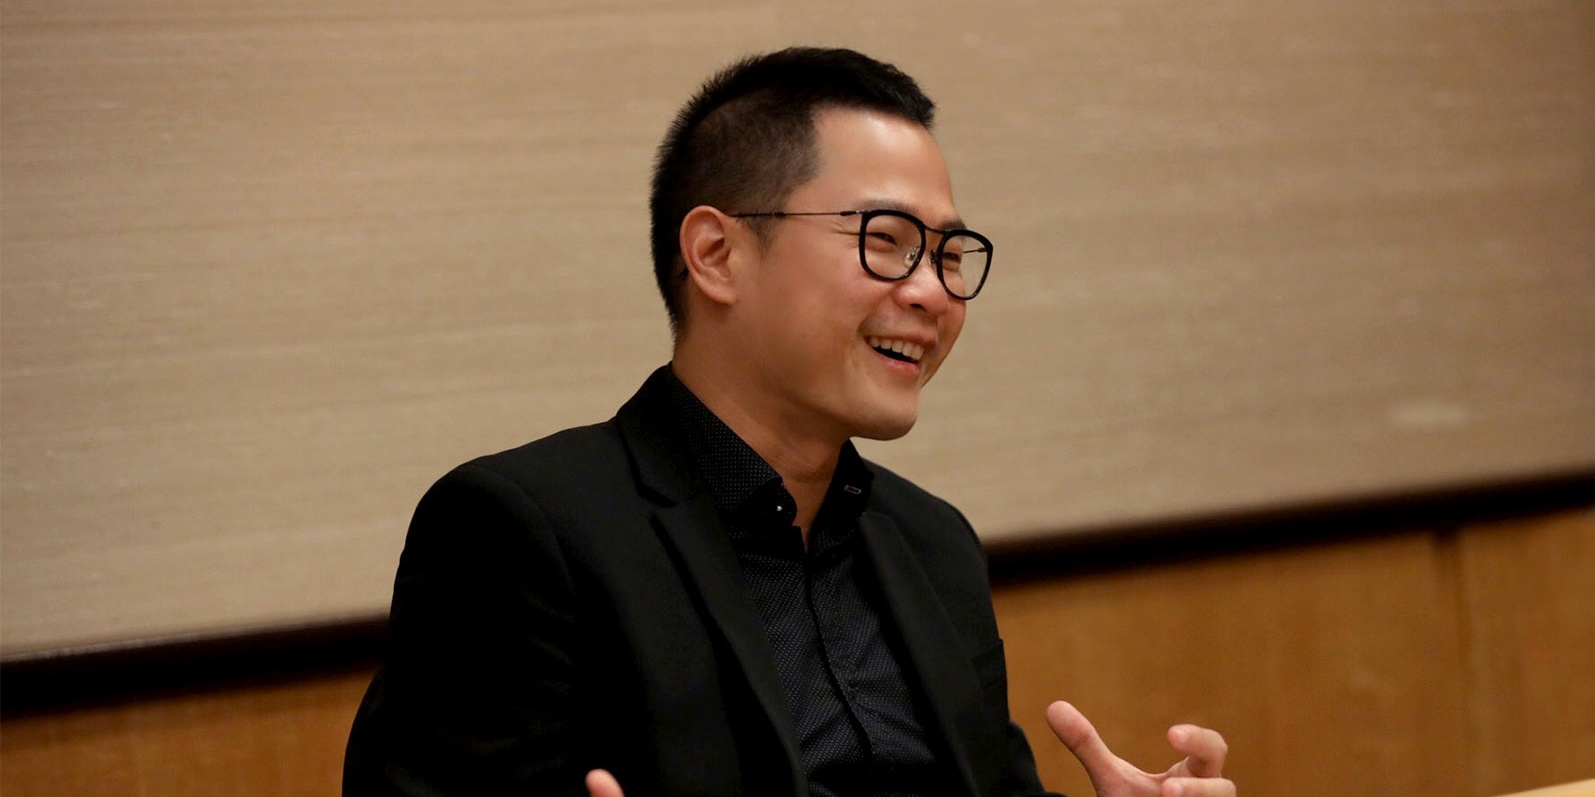 """We are trying to fulfil our vision of having music available anytime, anywhere"": An interview with Dennis Hau, Group Vice President of Tencent Music Entertainment"